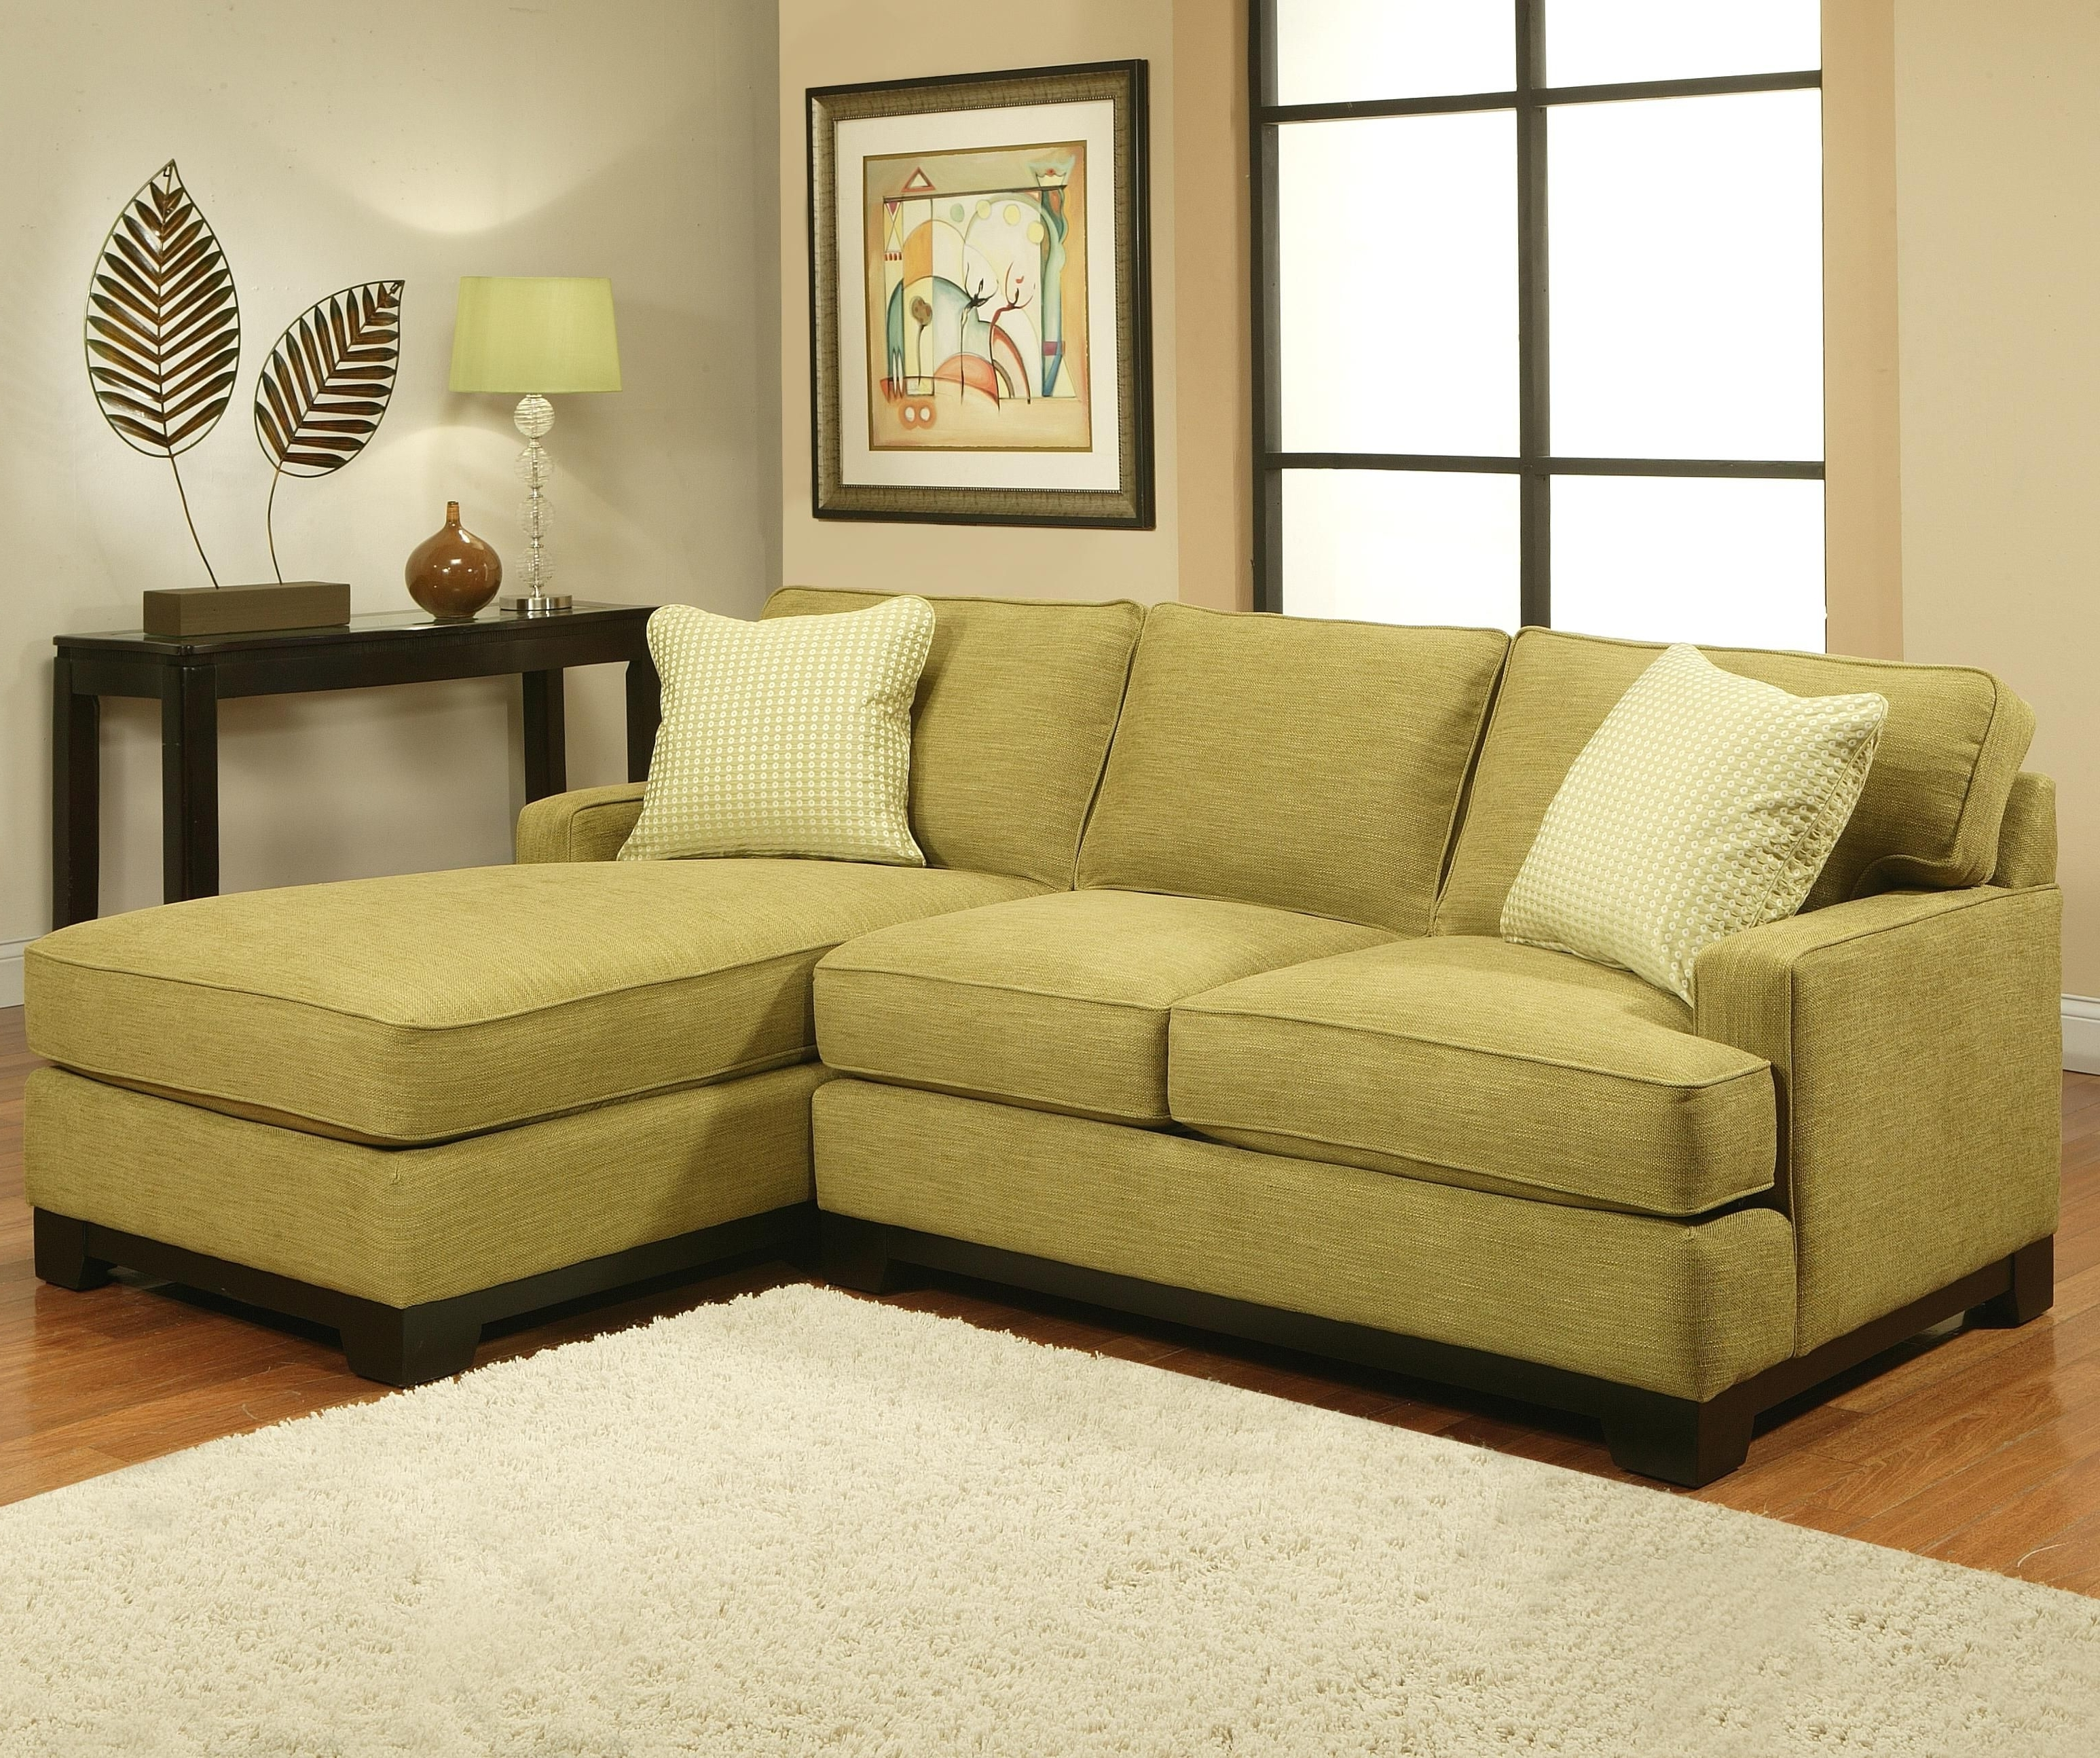 Nova Scotia Sectional Sofas Intended For 2019 Choices – Kronos Contemporary Sectional Sofa With Track Arms (View 11 of 20)